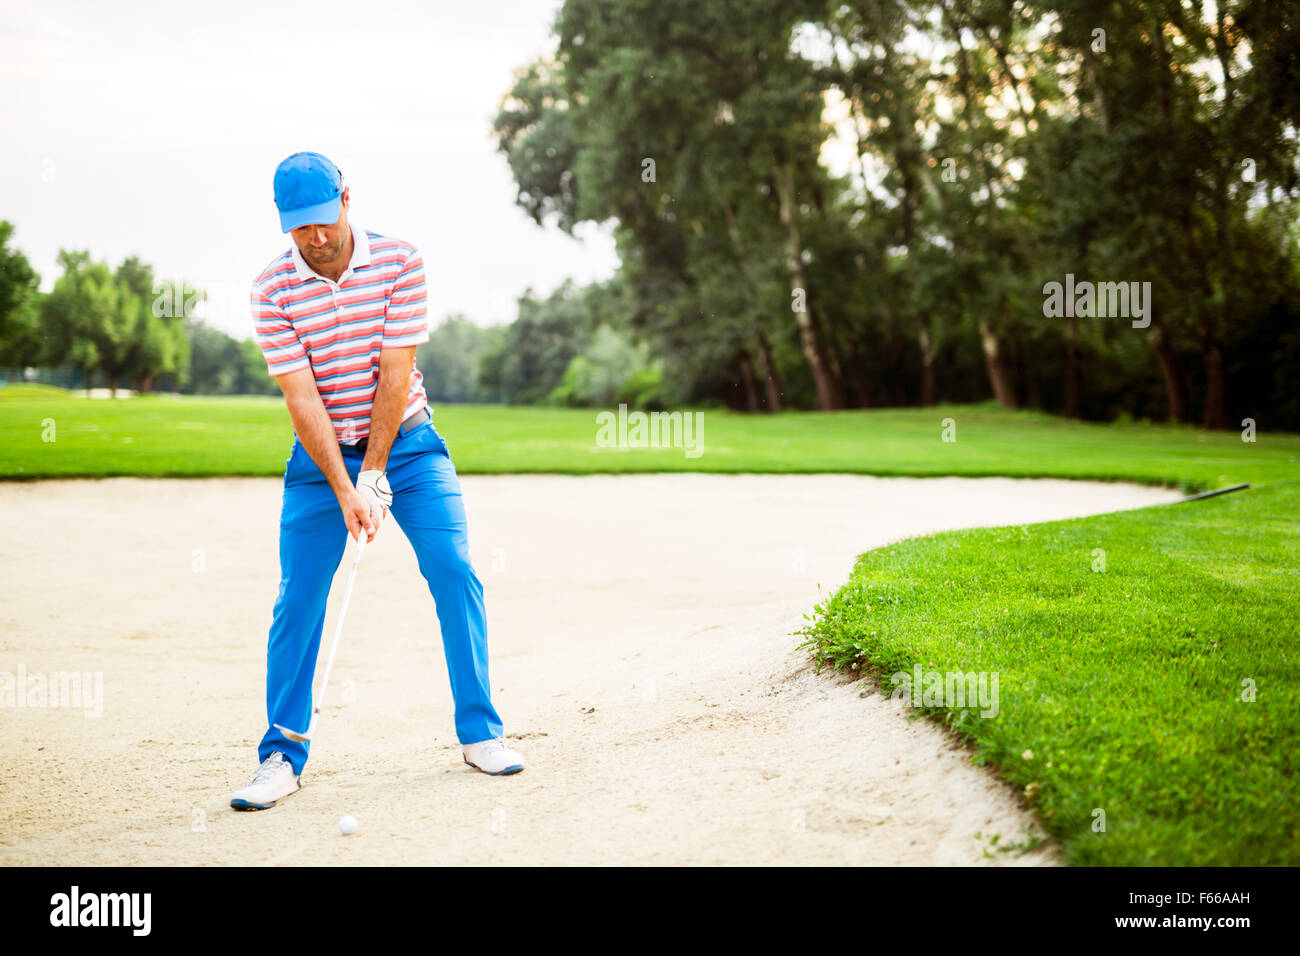 Golfer taking a bunker shot with the ball being in sand - Stock Image